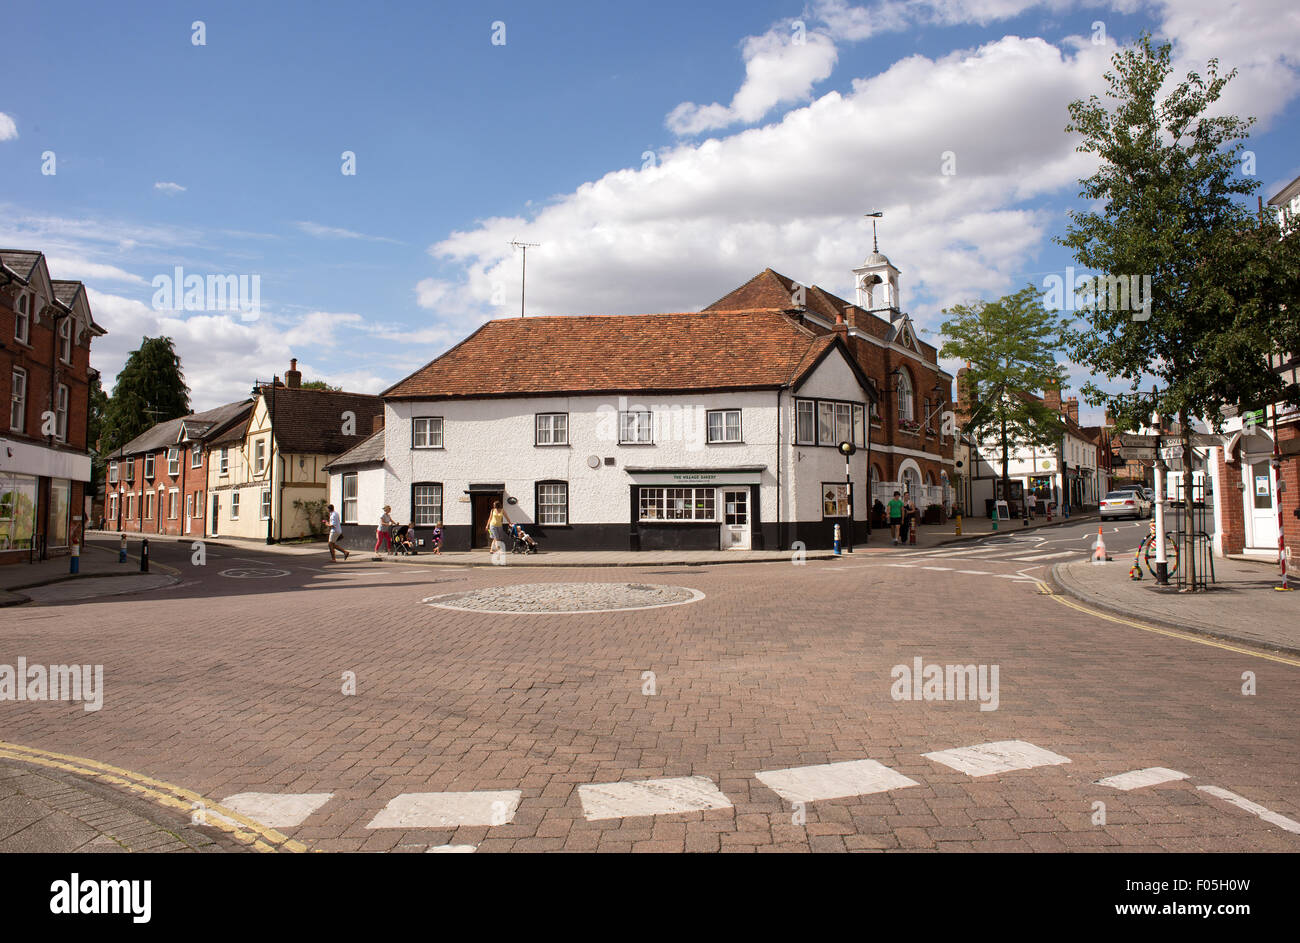 Town centre of an old English town Whitchurch in north Hampshire England UK - Stock Image